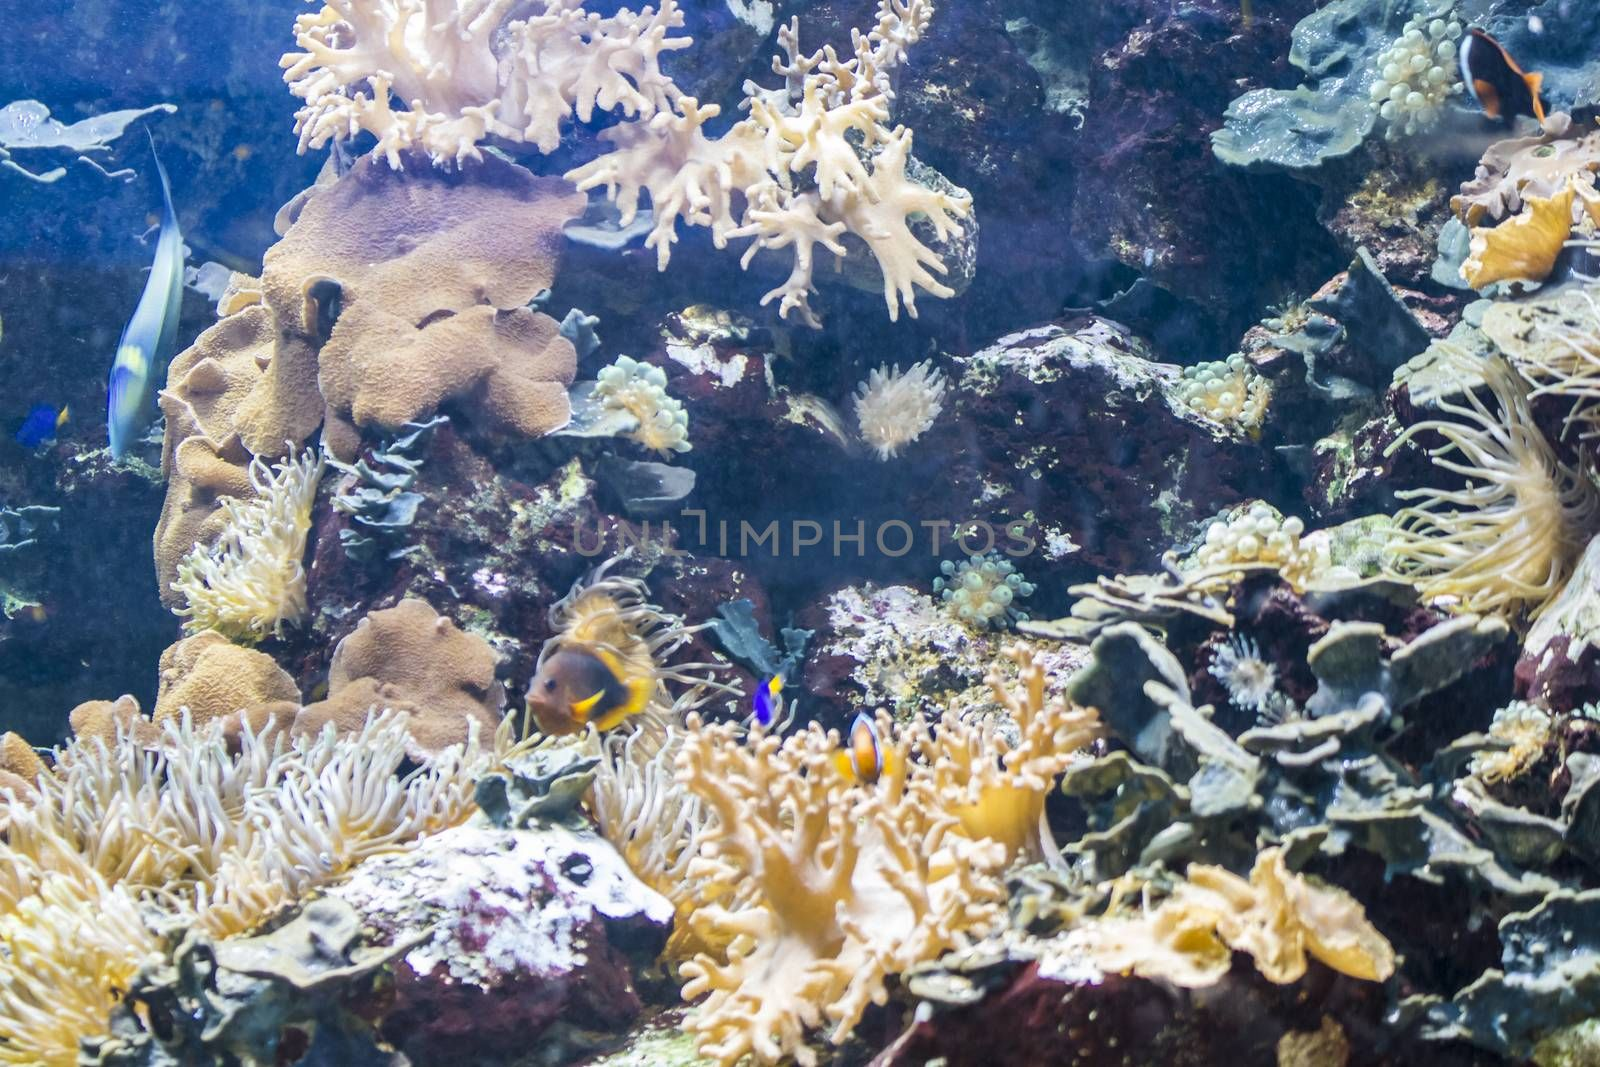 underwater, seabed with fish and coral reef